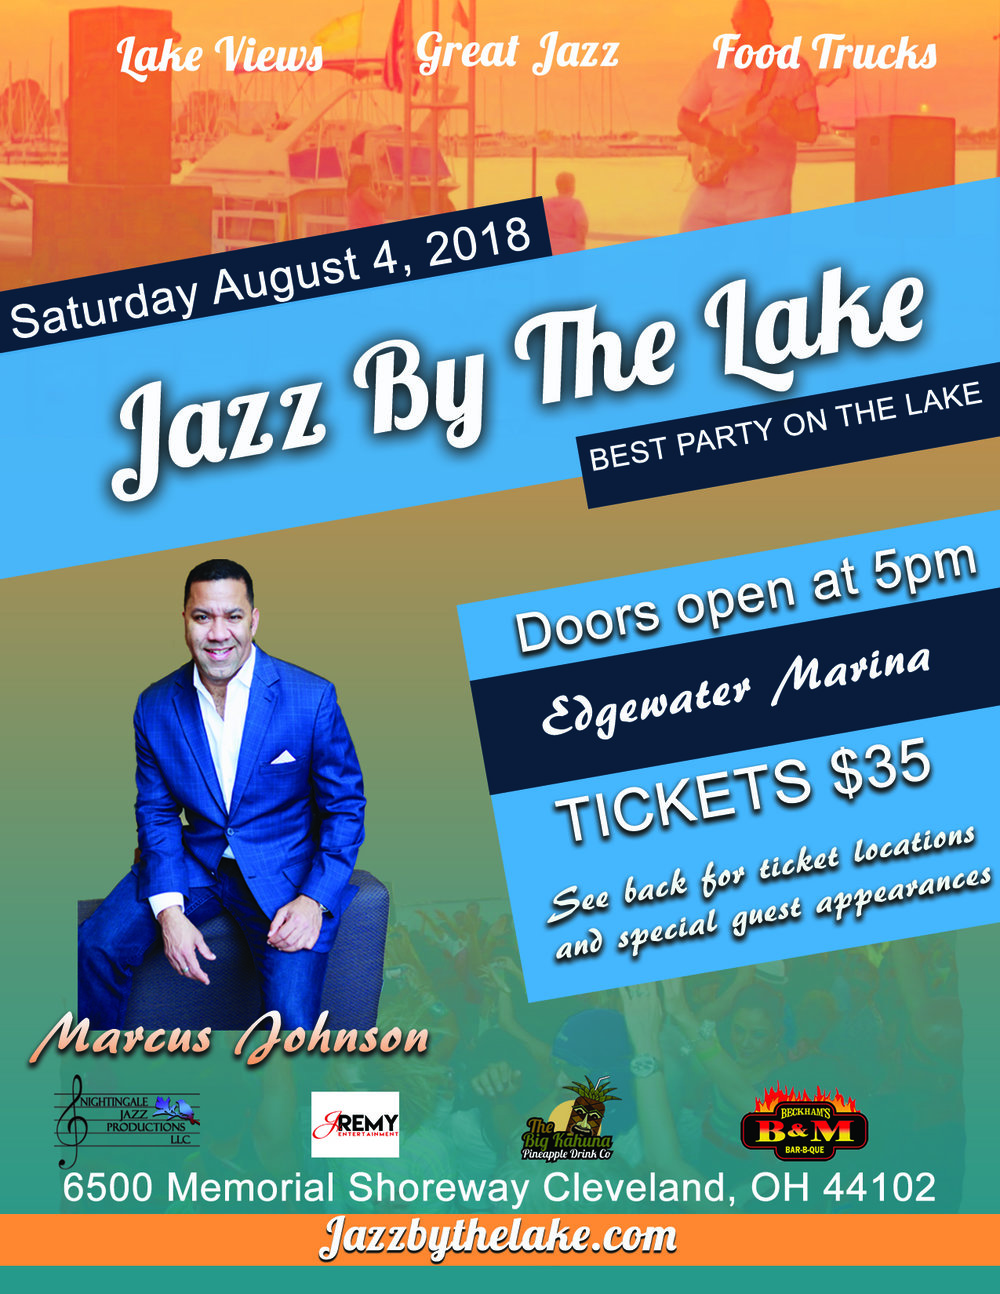 Jazz by the lake 2018 7-5-18.jpg